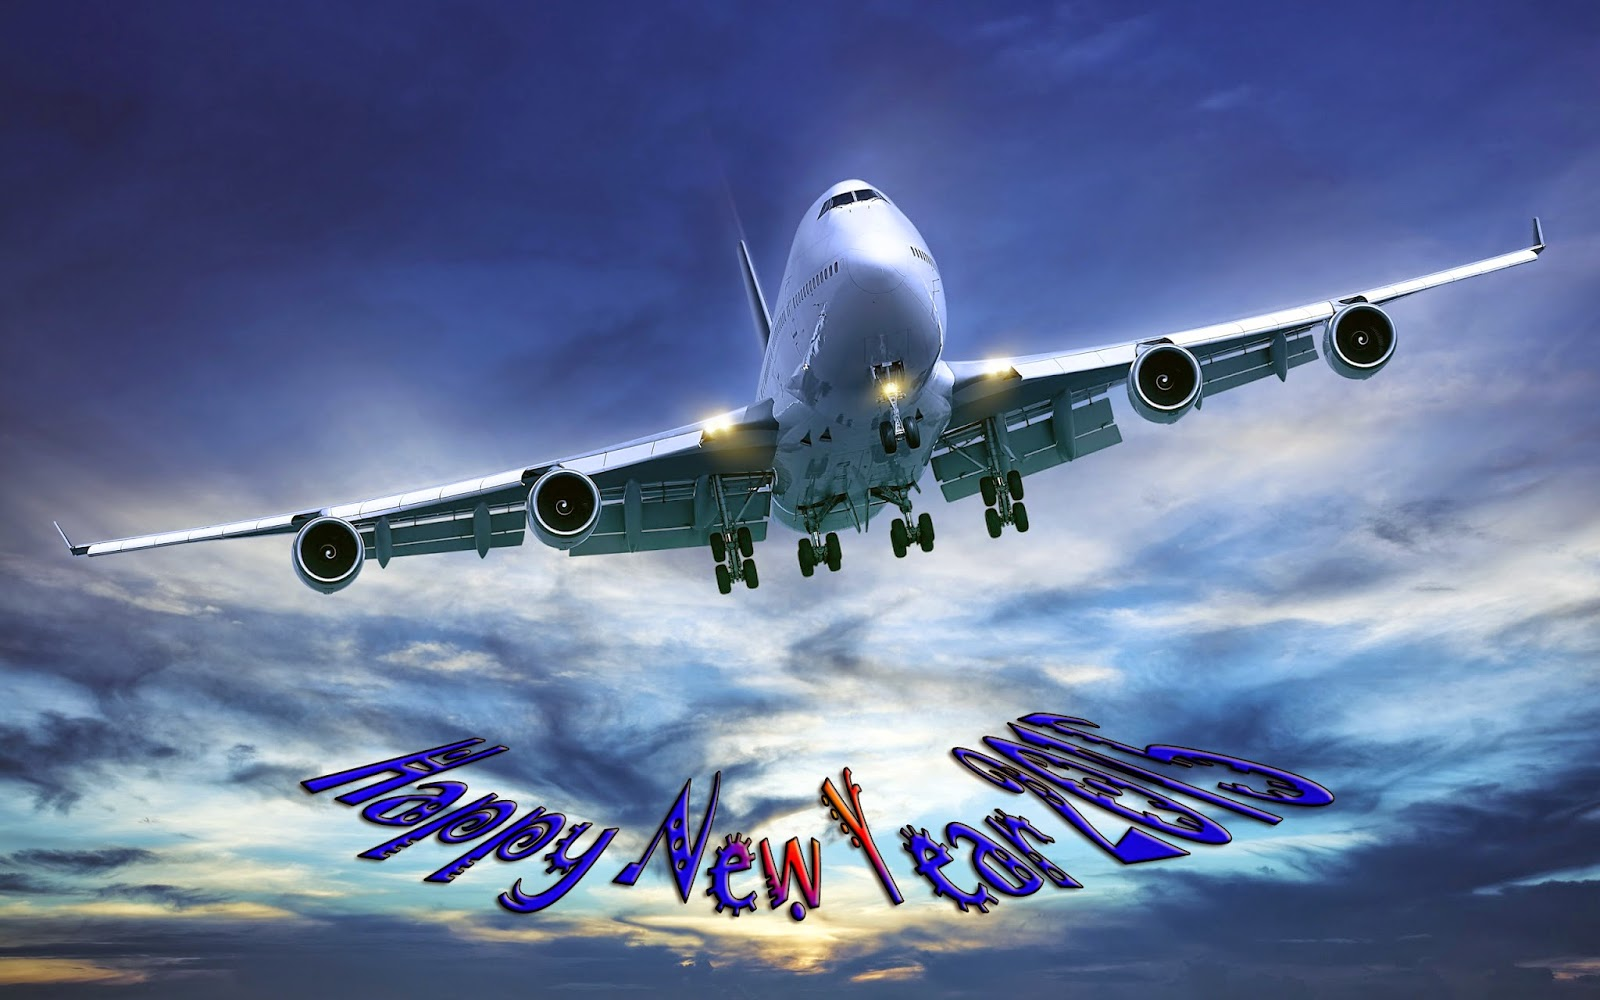 Happy New Year 2015 Cards - Beautiful Free Wishing Cards